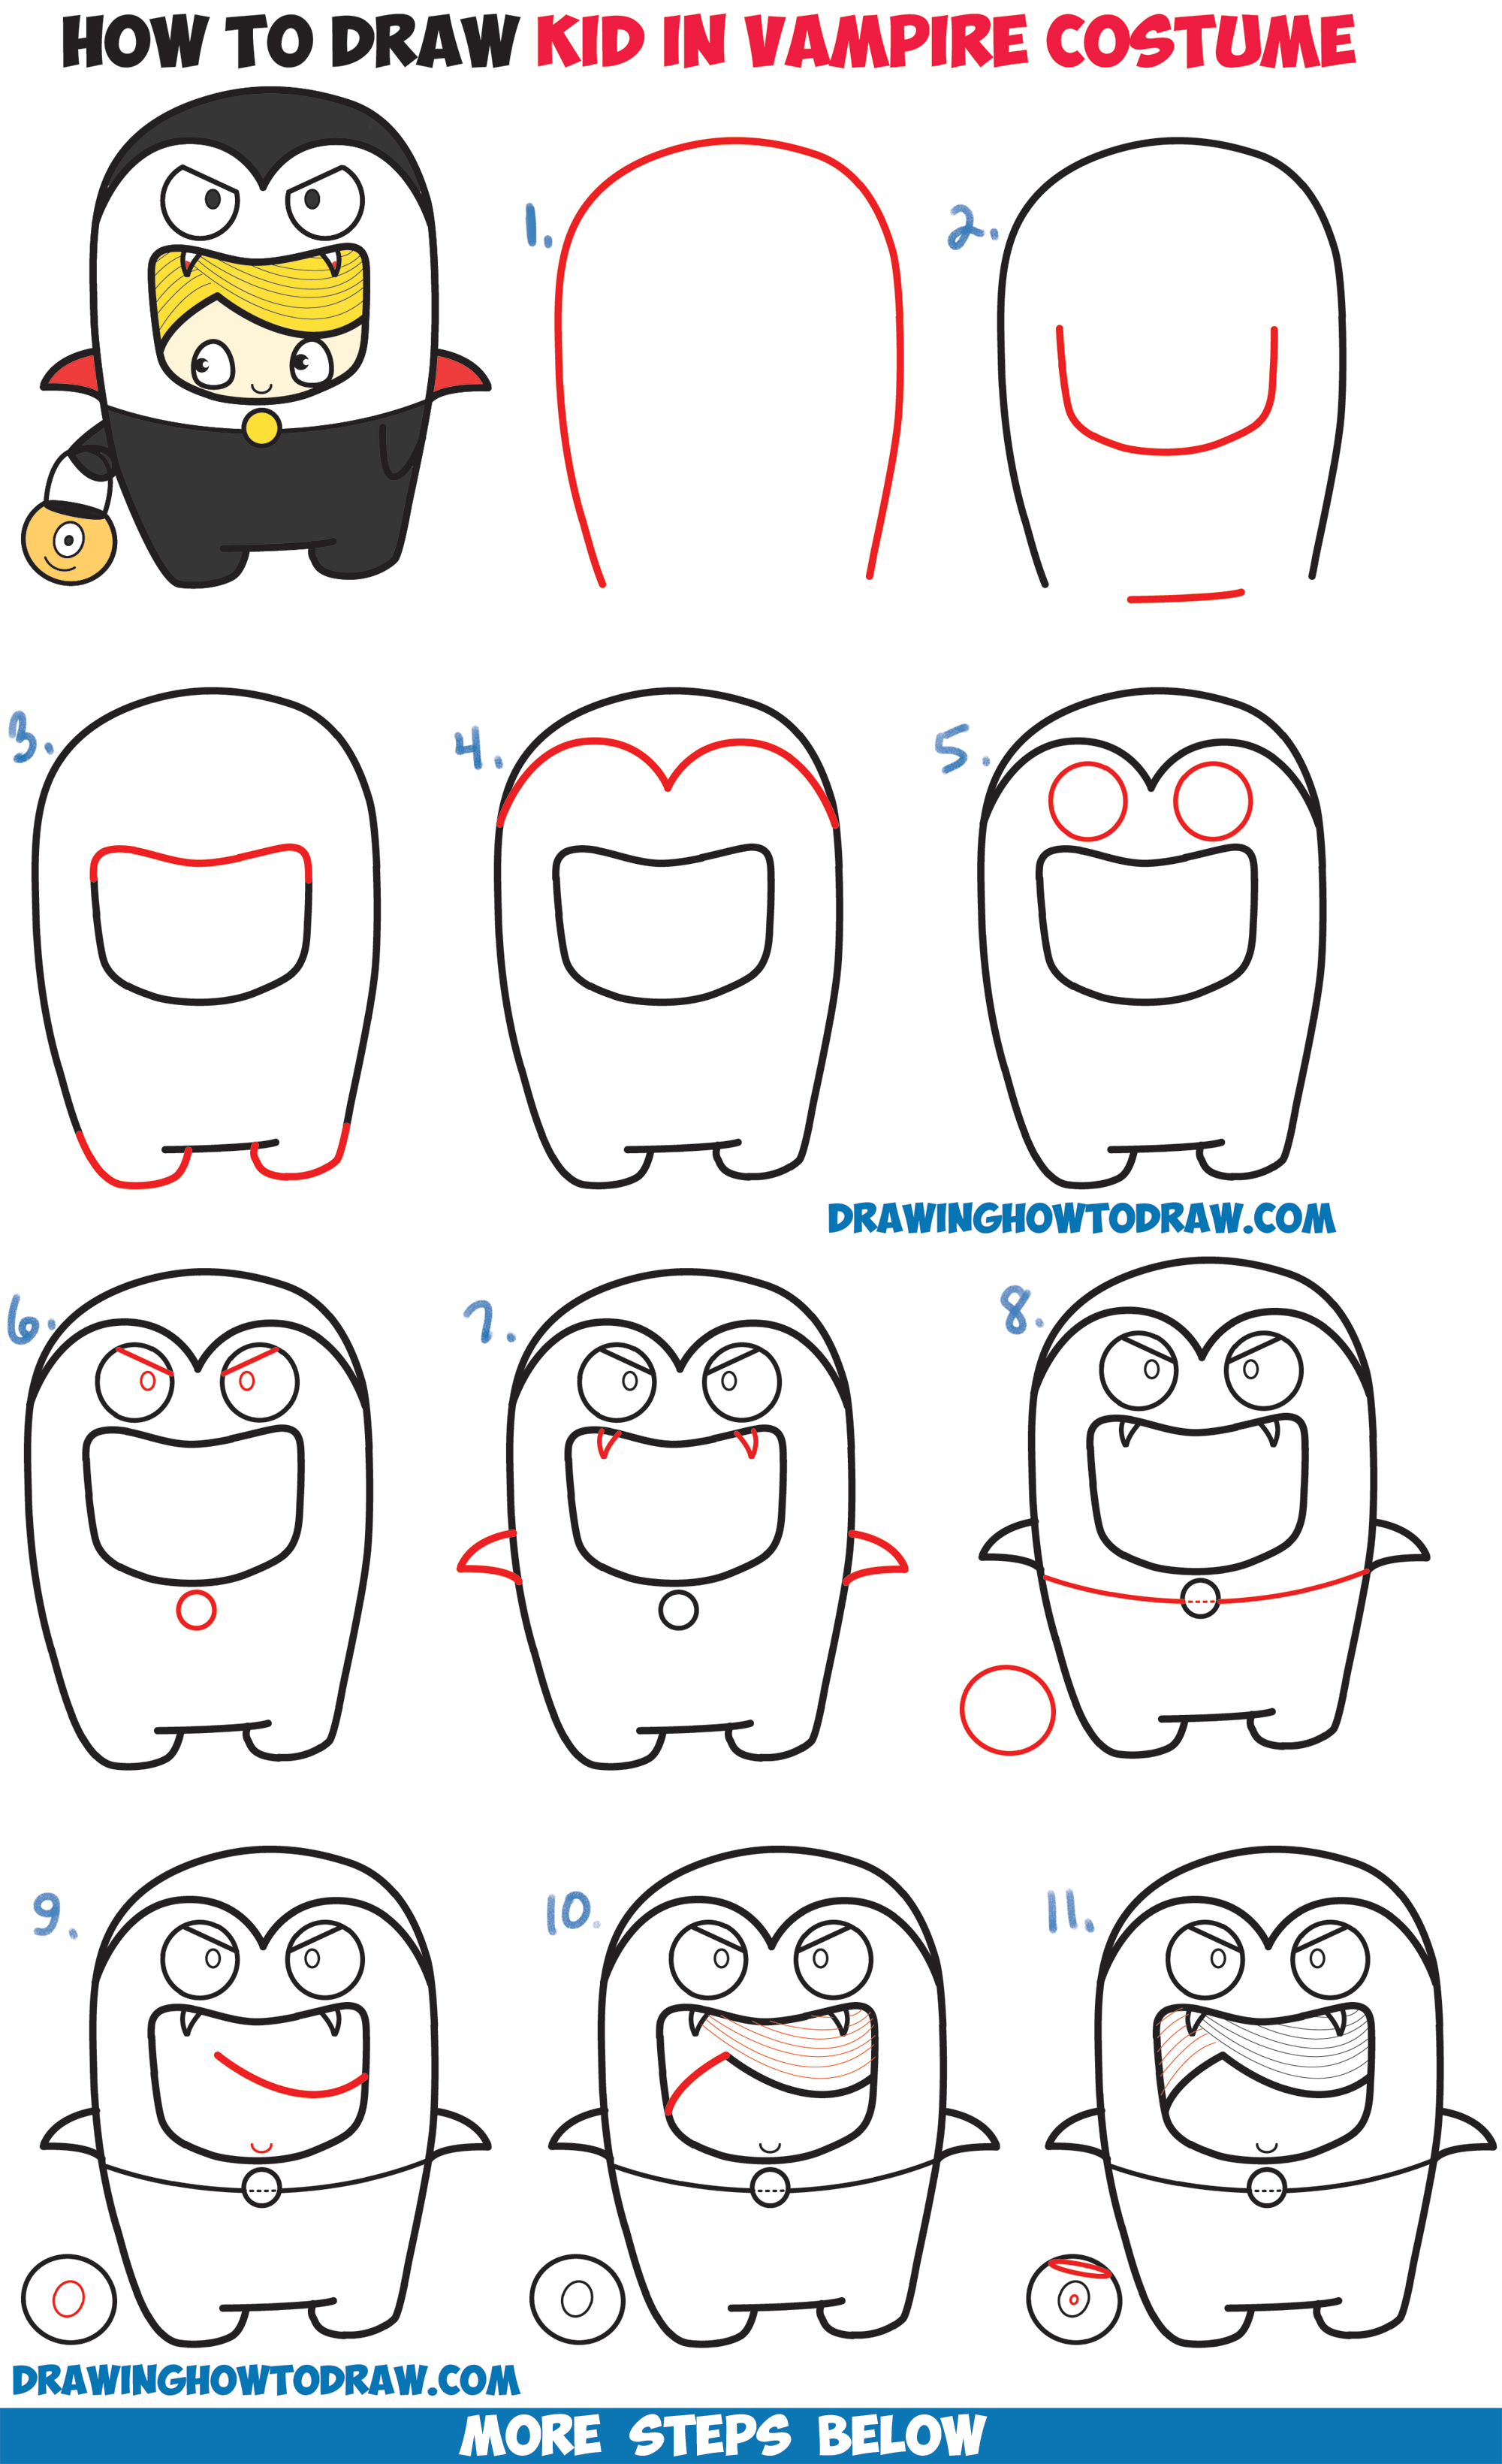 Learn How to Draw a Kid in a Halloween Vampire Costume (Cute Kawaii) Easy Step by Step Drawing Tutorial for Kids